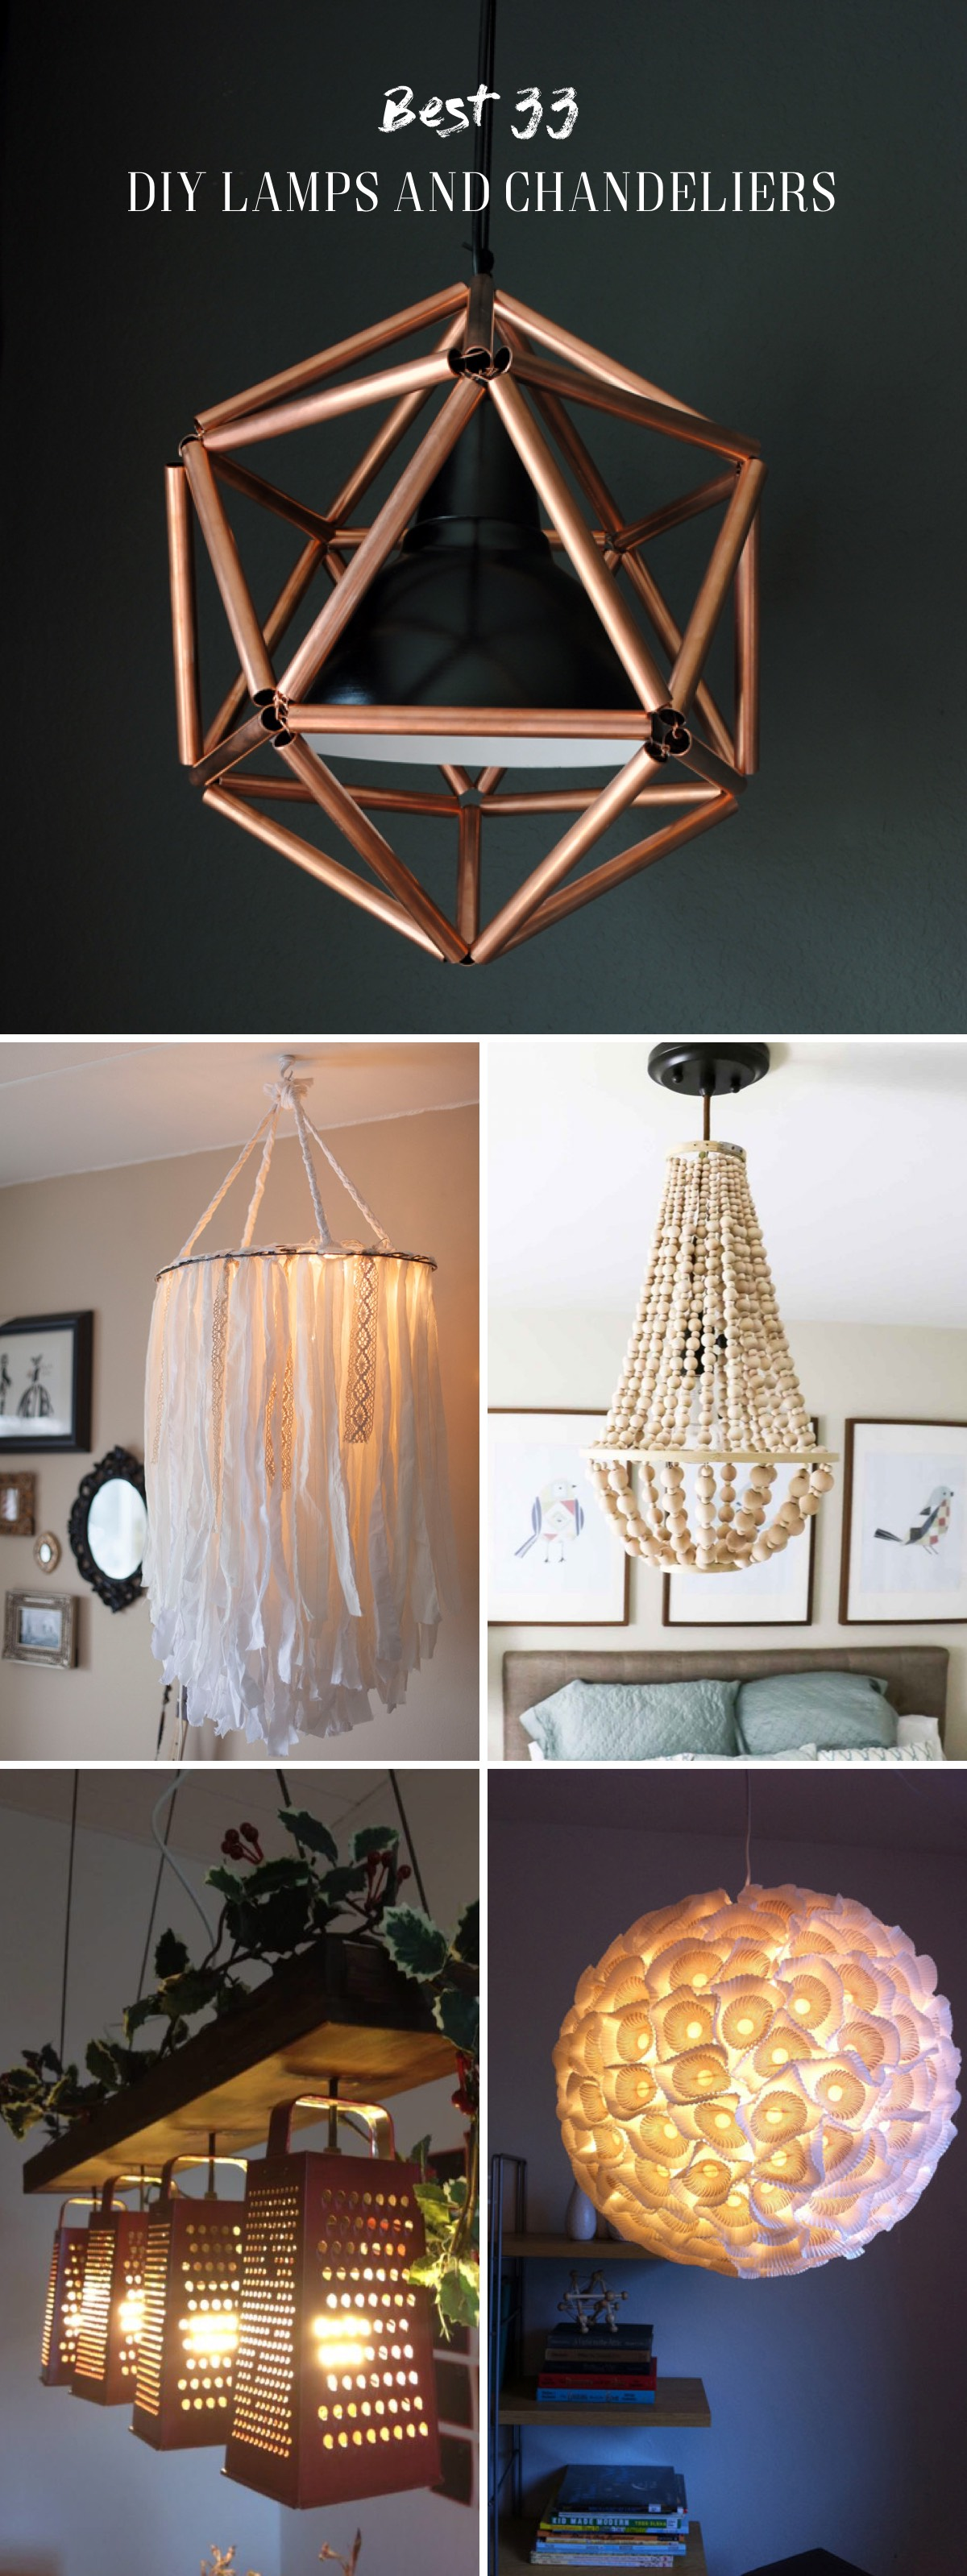 33 Diy Lamps And Chandeliers Lighting Up Your Home With Glory